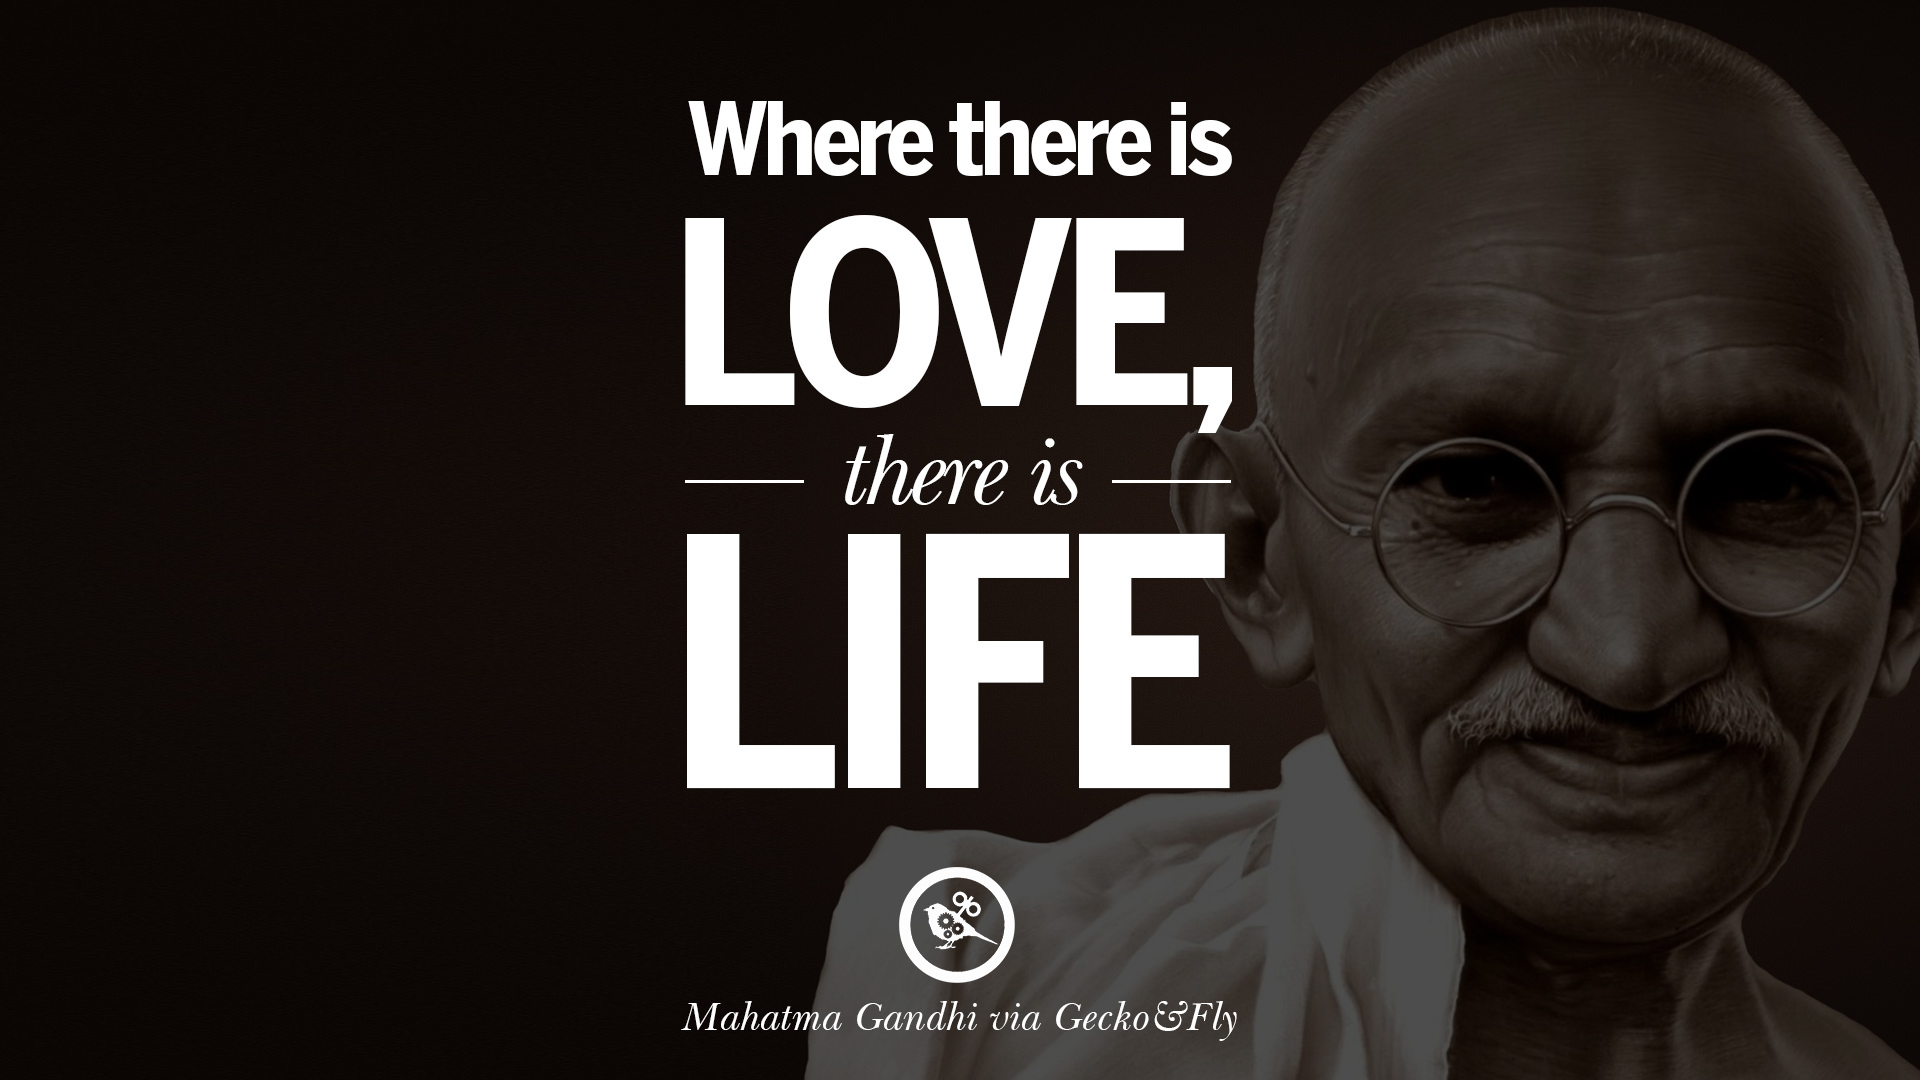 Gandhi Quotes On Love 20 Mahatma Gandhi Quotes And Frases On Peace Protest And Civil